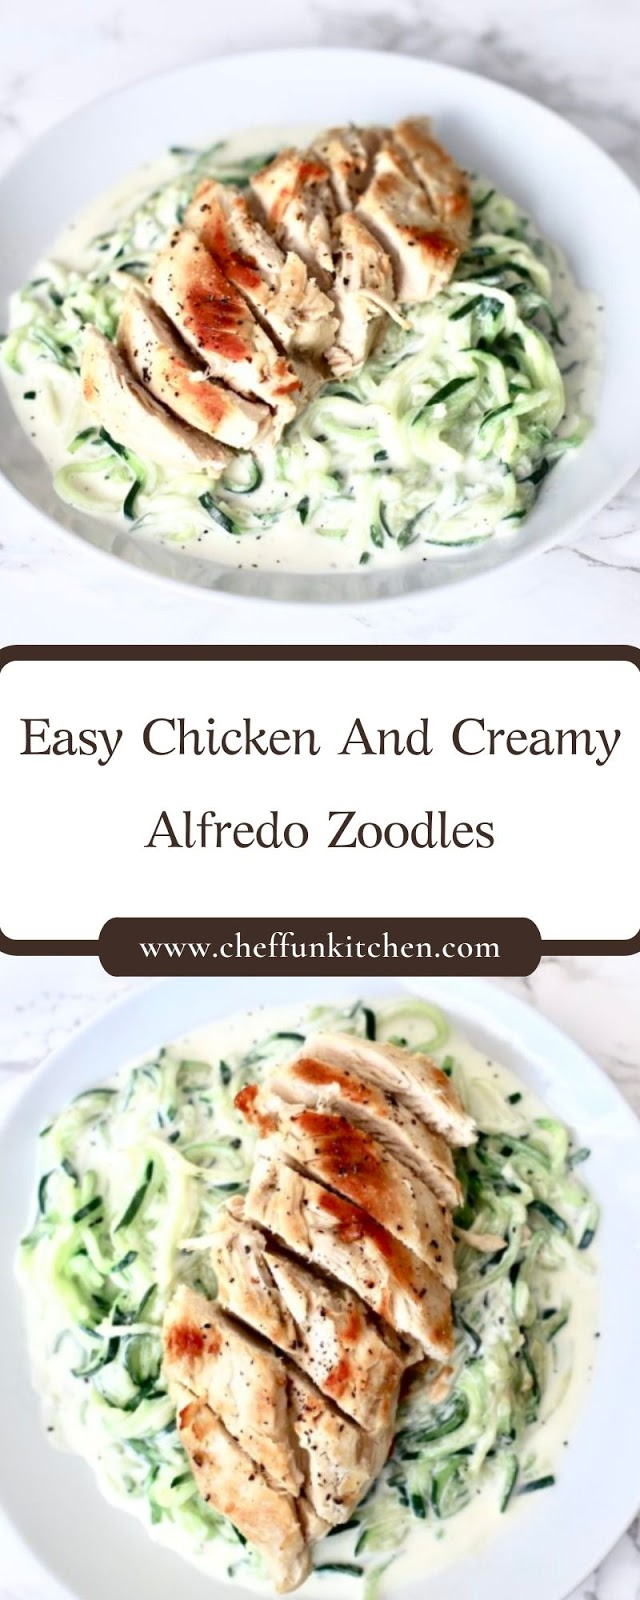 Easy Chicken And Creamy Alfredo Zoodles